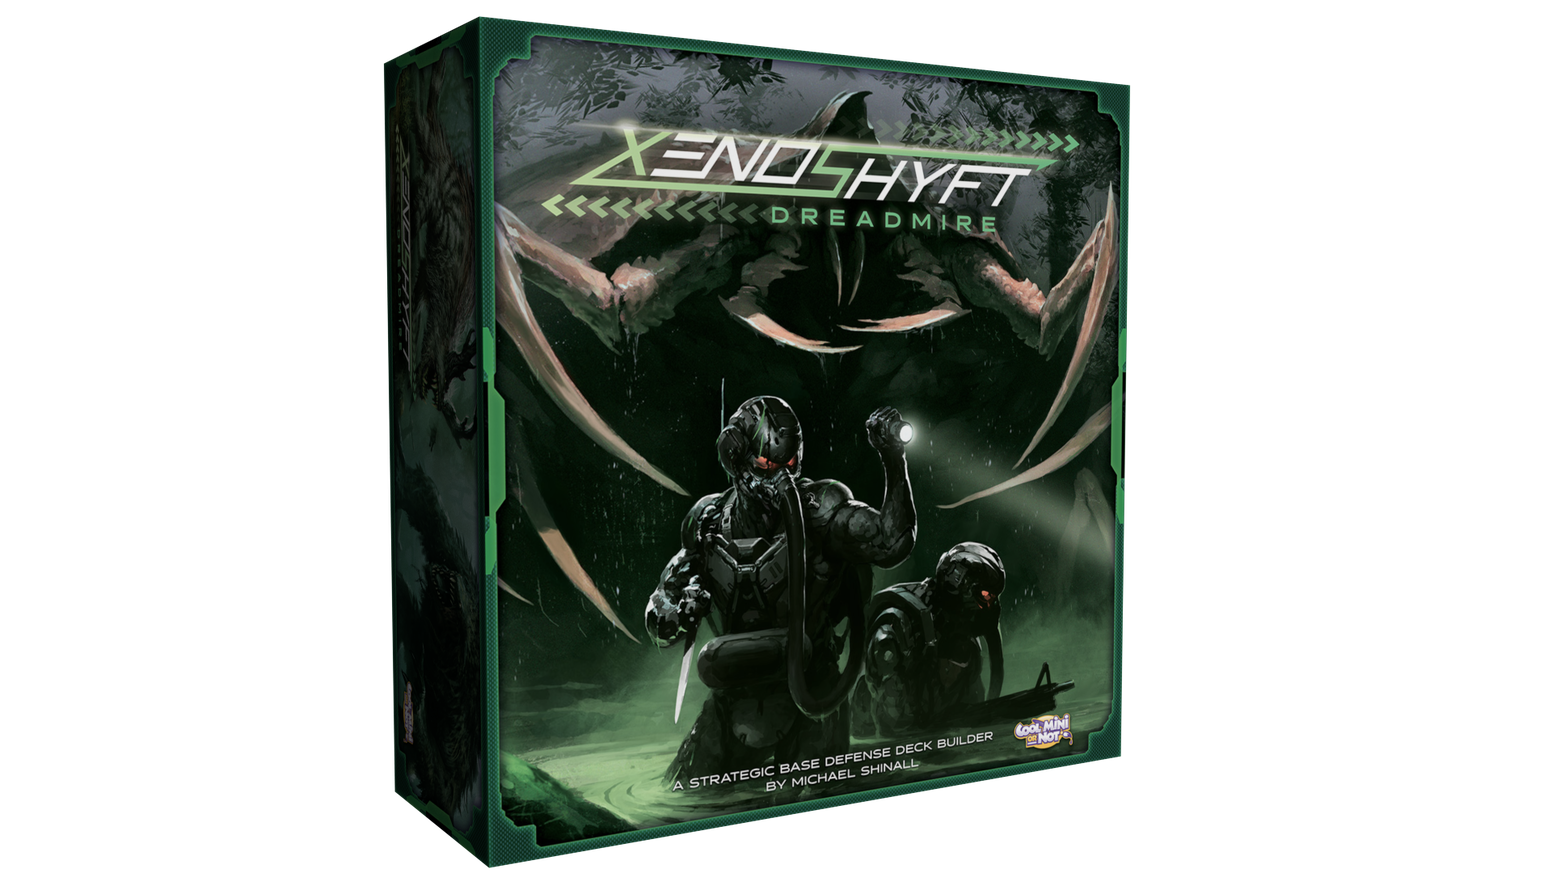 Partner up with your friends to survive wave after wave of horrific aliens in this cooperative deck-building base-defense game!